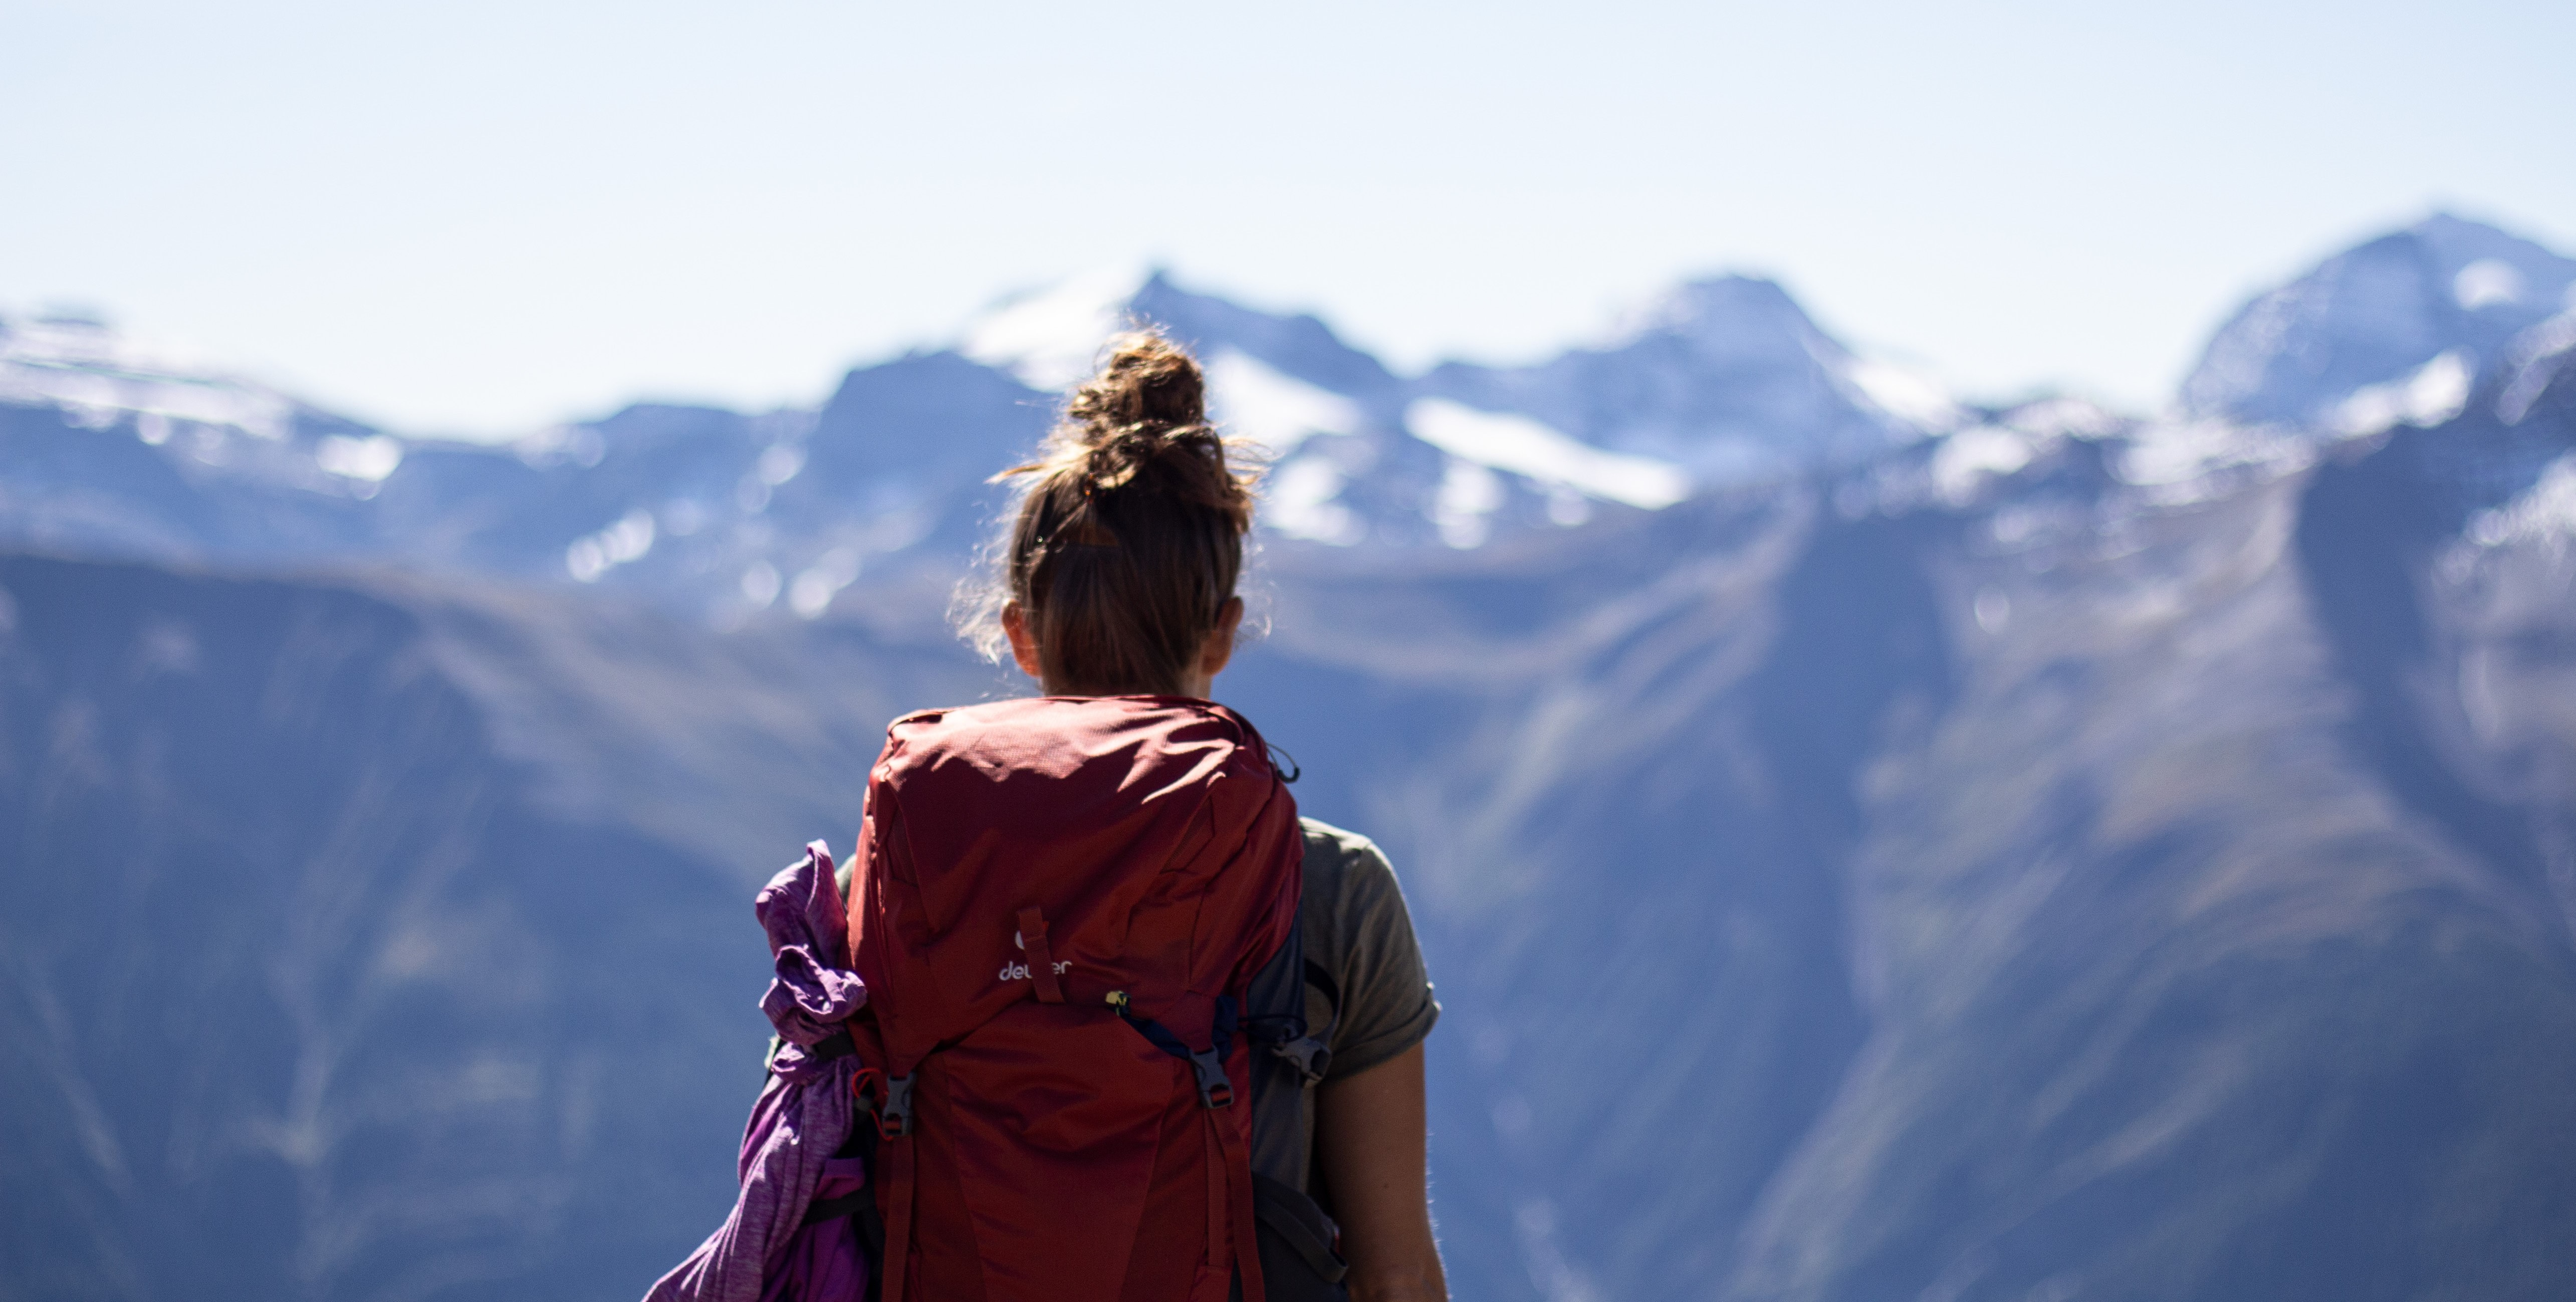 Mountain Tourism in Switzerland: Camping and Hiking in the Swiss Alps